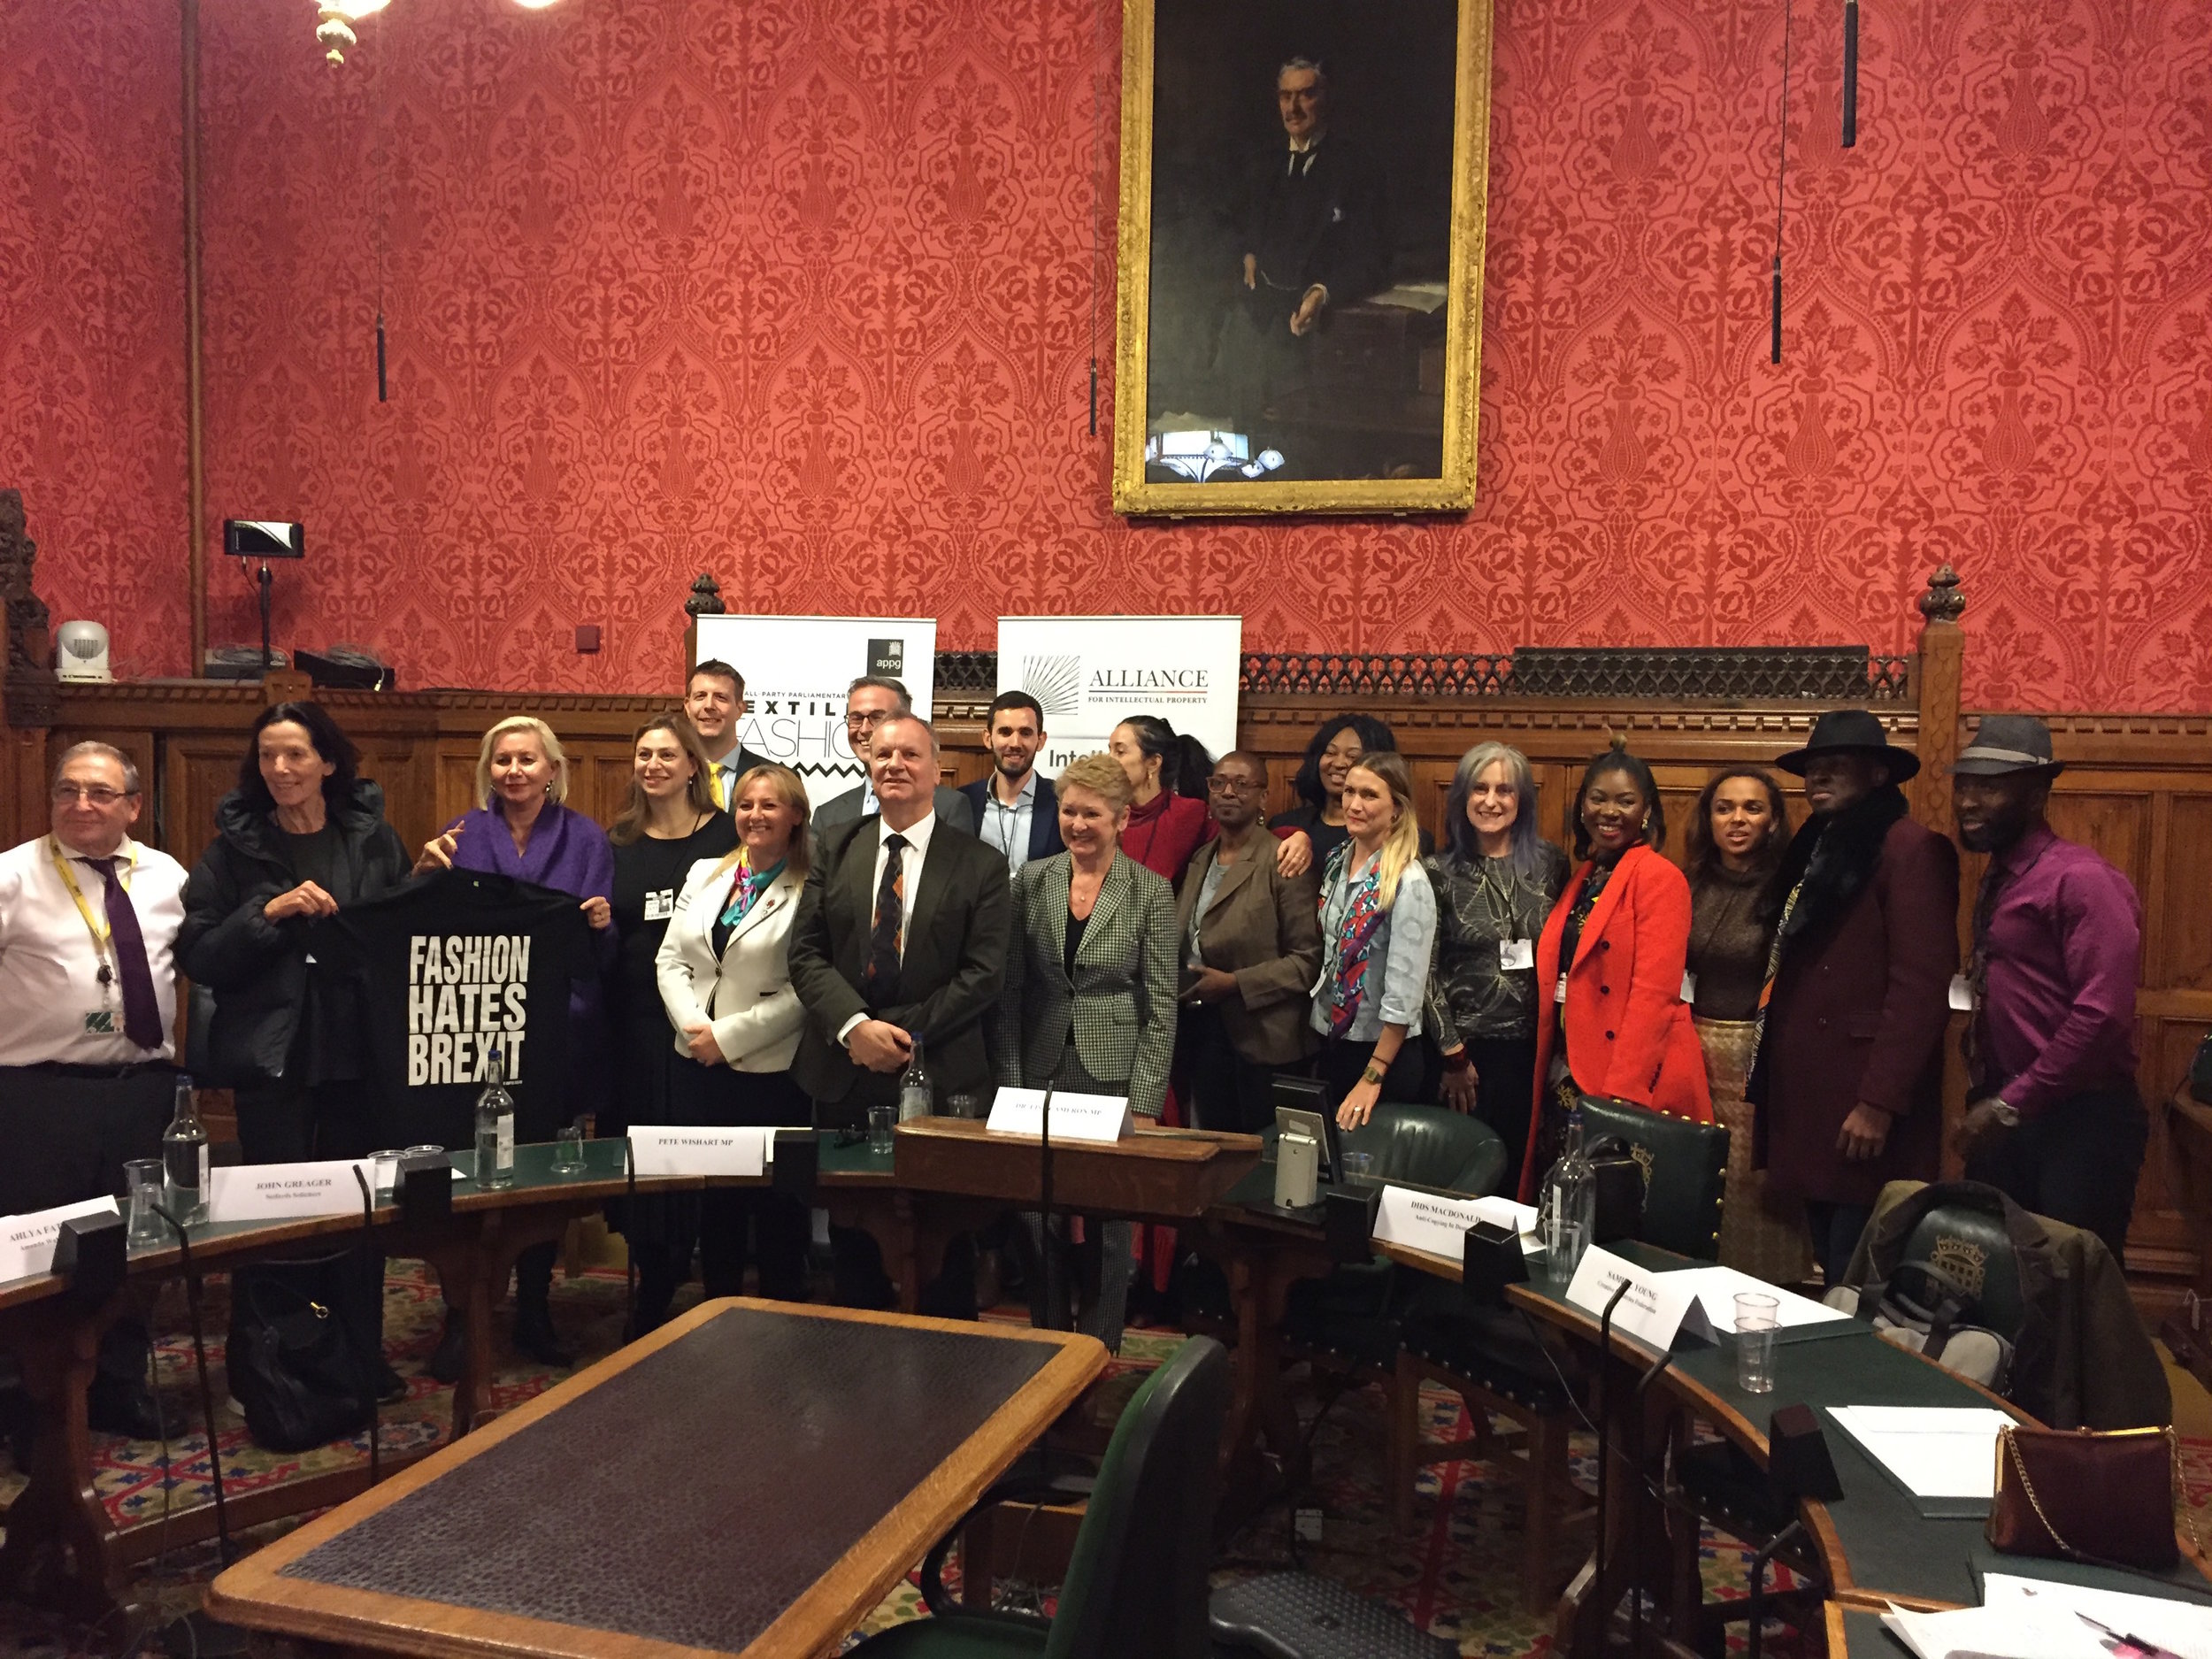 APPG FOR TEXTILES AND FASHION & APPG FOR INTELLECTUAL PROPERTY: FASHION IN THE GLOBAL MARKETPLACE - NOVEMBER 2018Speakers: Dids MacDonald – CEO Anti-Copying in Design, Ahlya Fateh – Managing Director AMANDA WAKELEY, John Greager – Commercial Litigator and IP Lawyer, Samuel Young – Creative Industries Federation